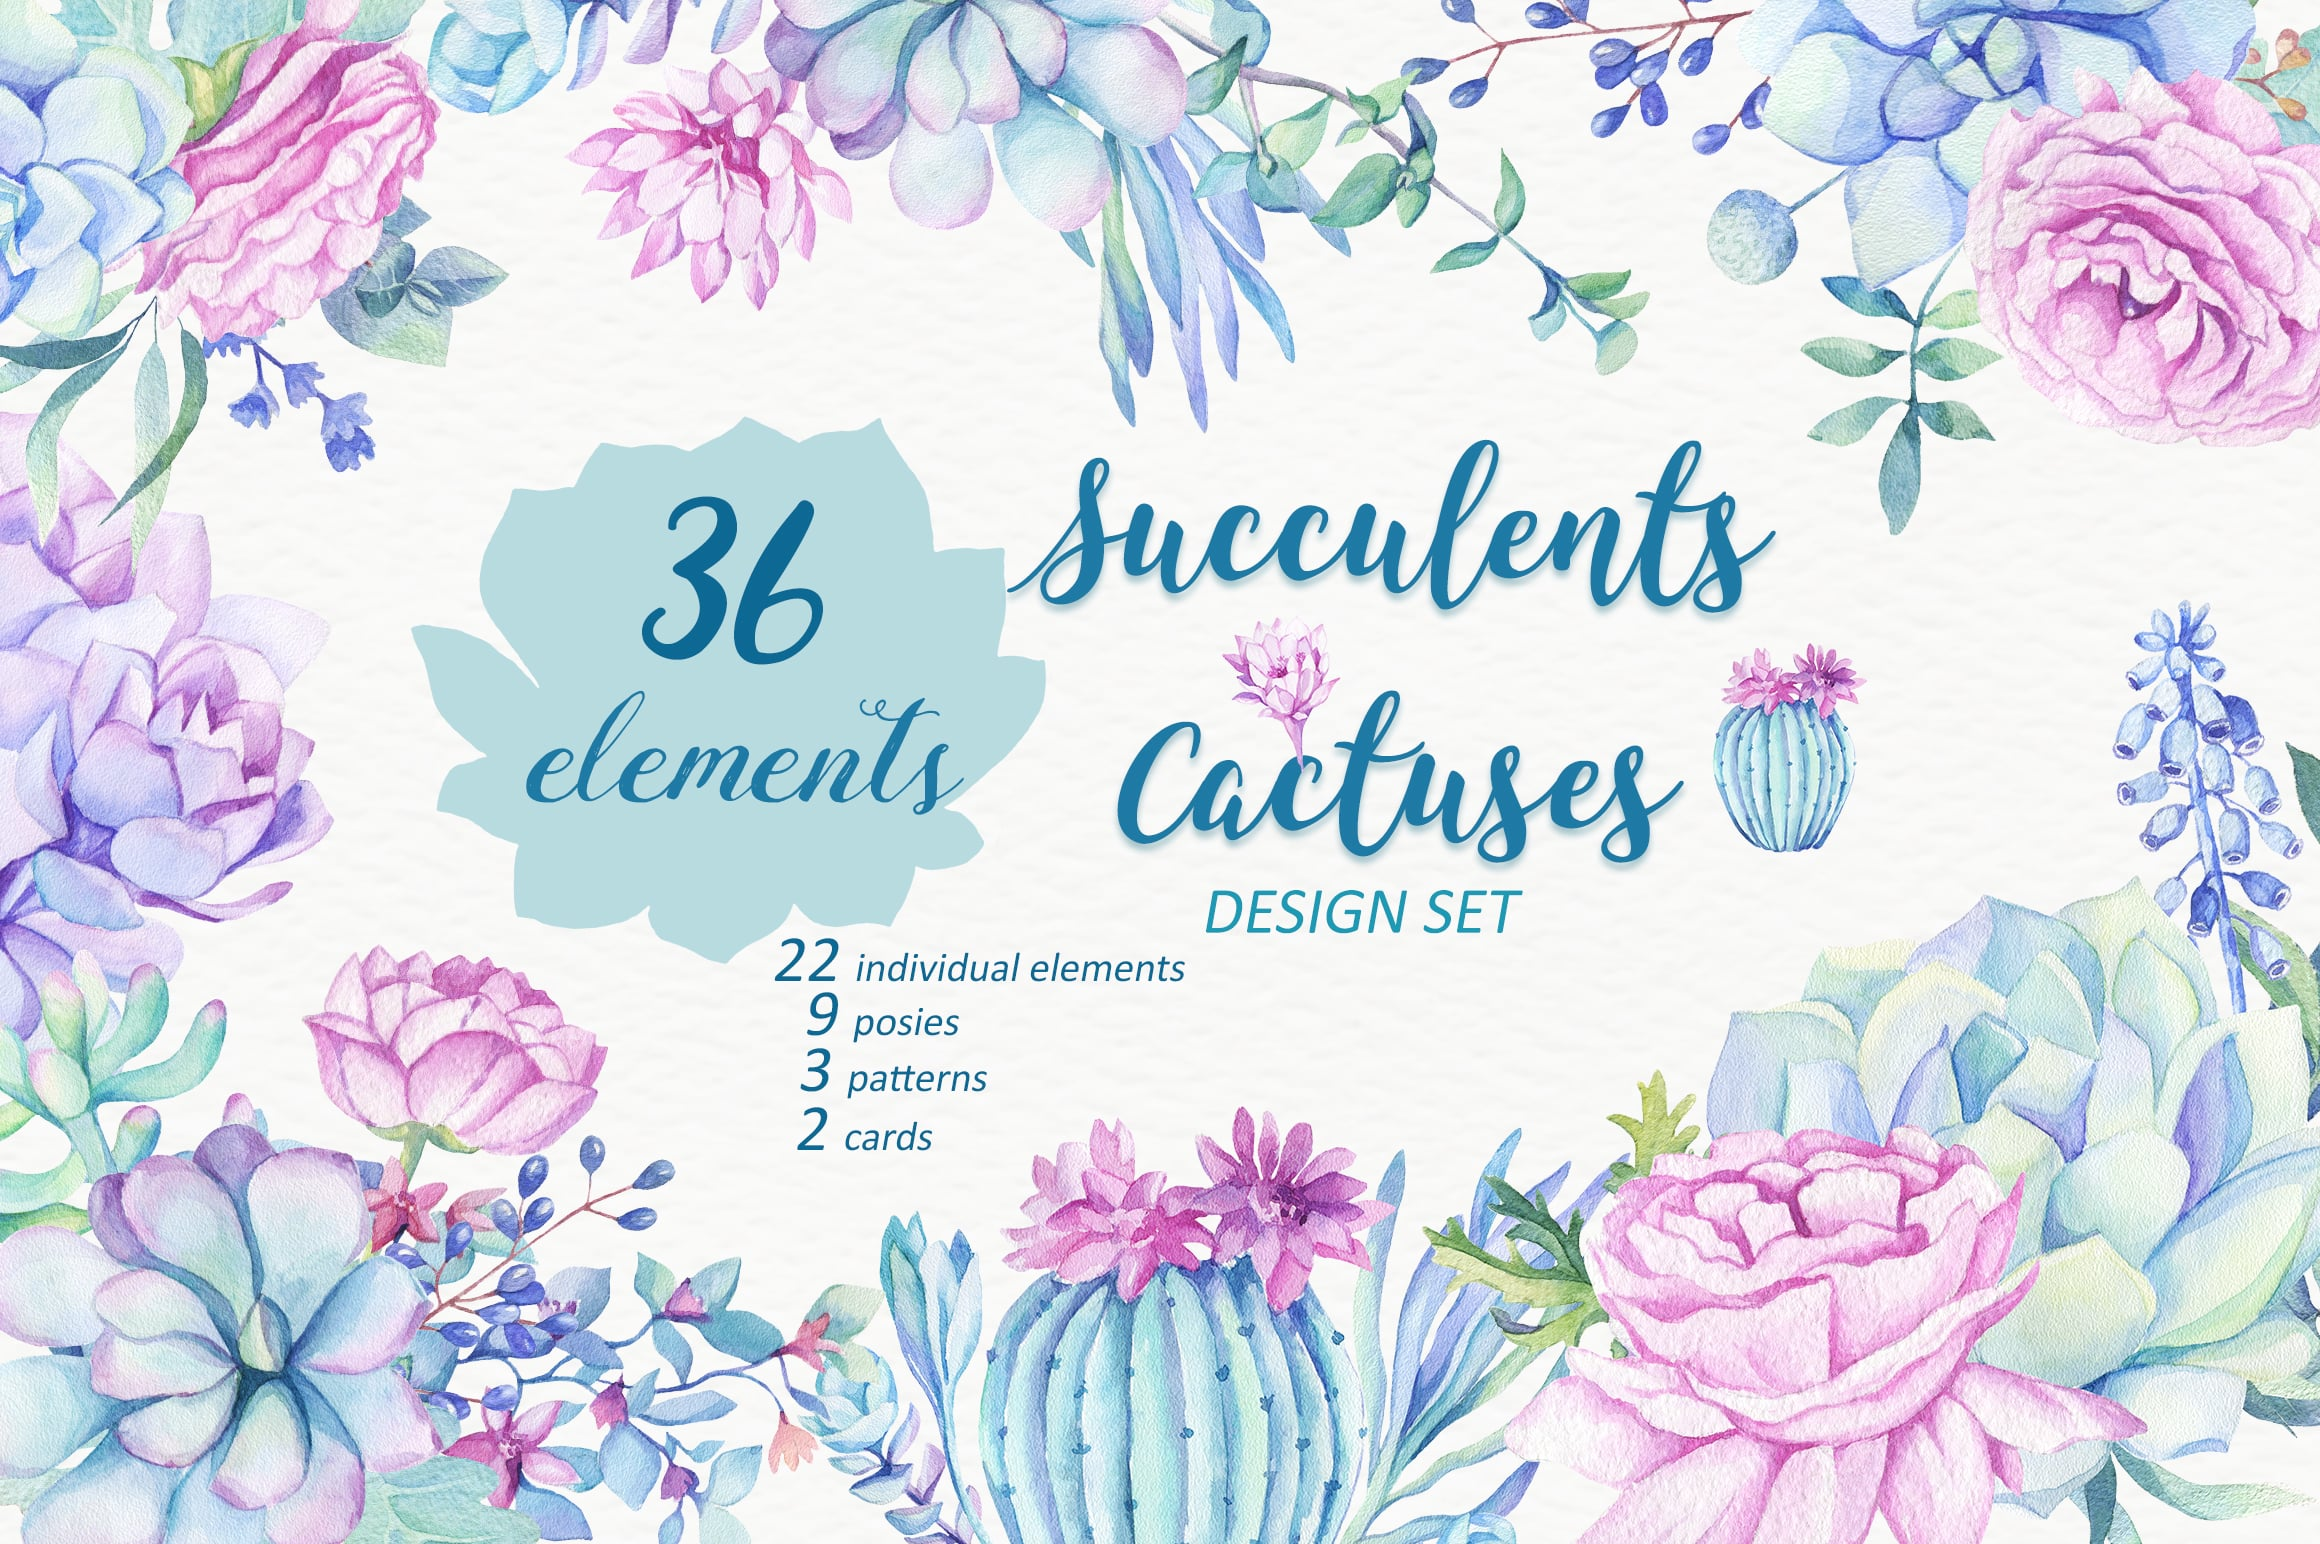 240+ Cactus Clipart 2021: Free and Premium Collections - 1 1